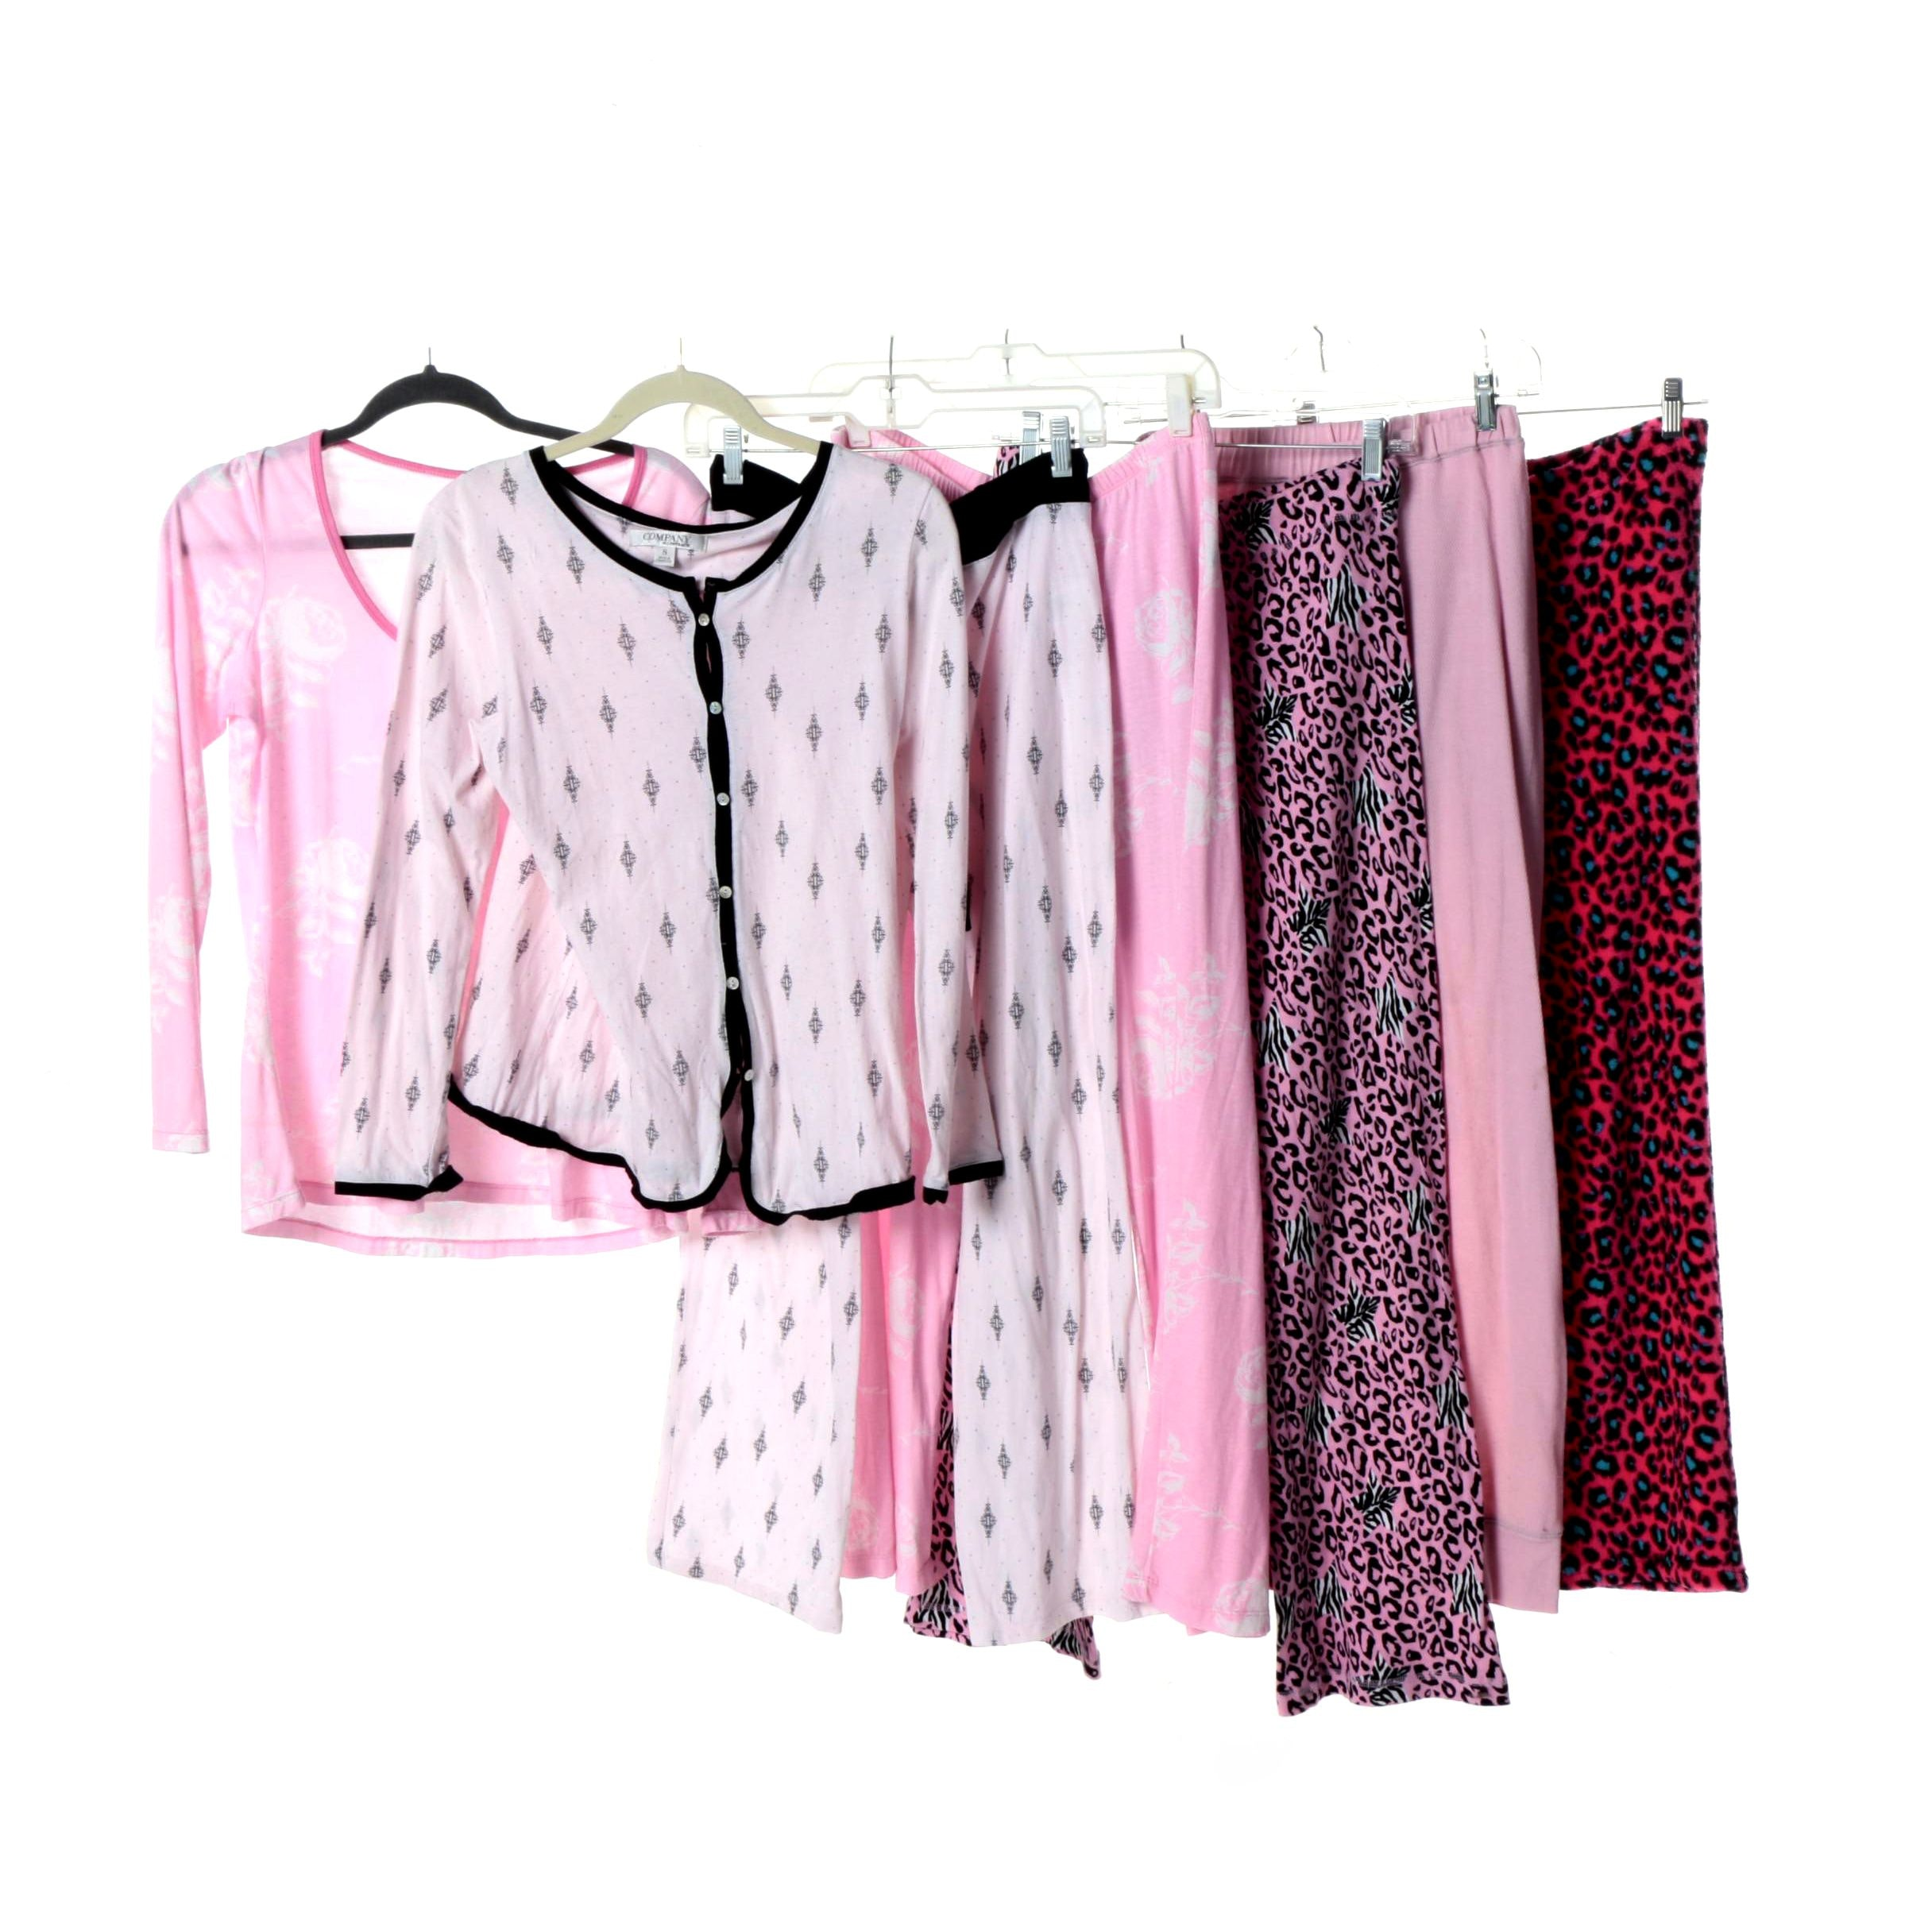 Women's Sleepwear Including Sweet Tart and Company Ellen Tracy